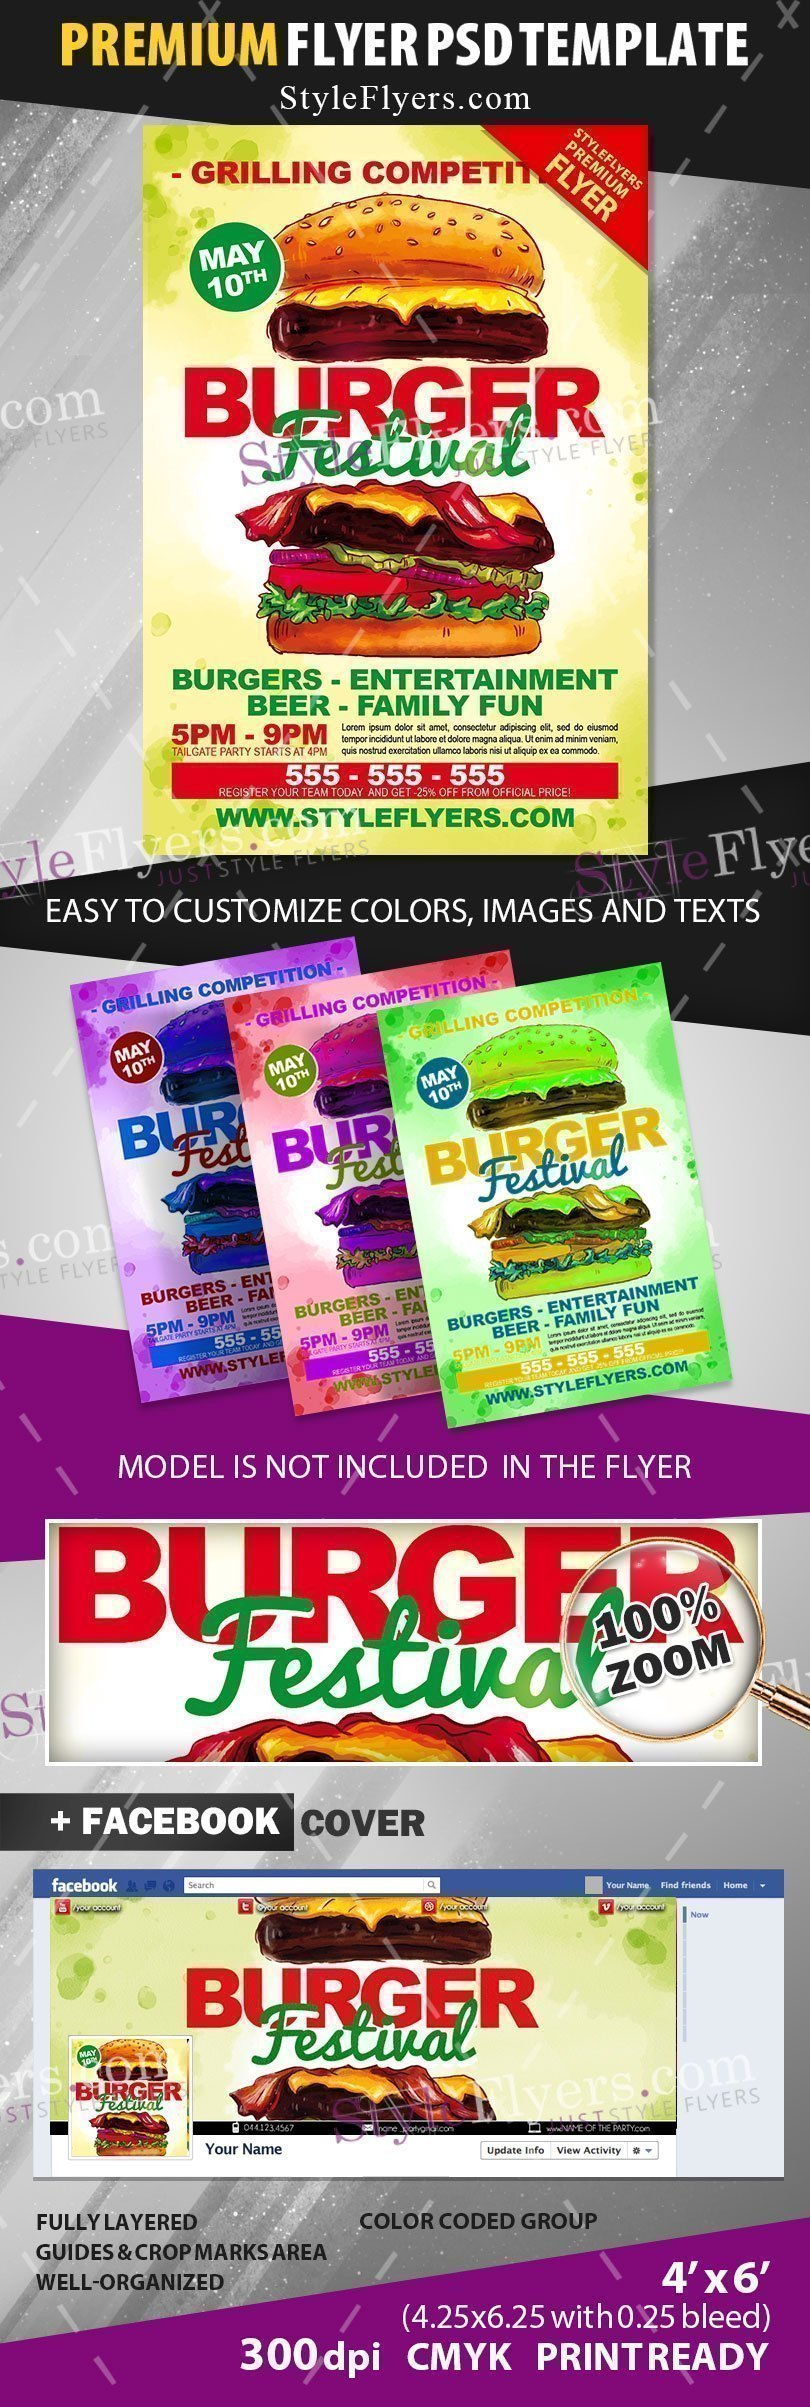 preview_Burger_festival_premium_template